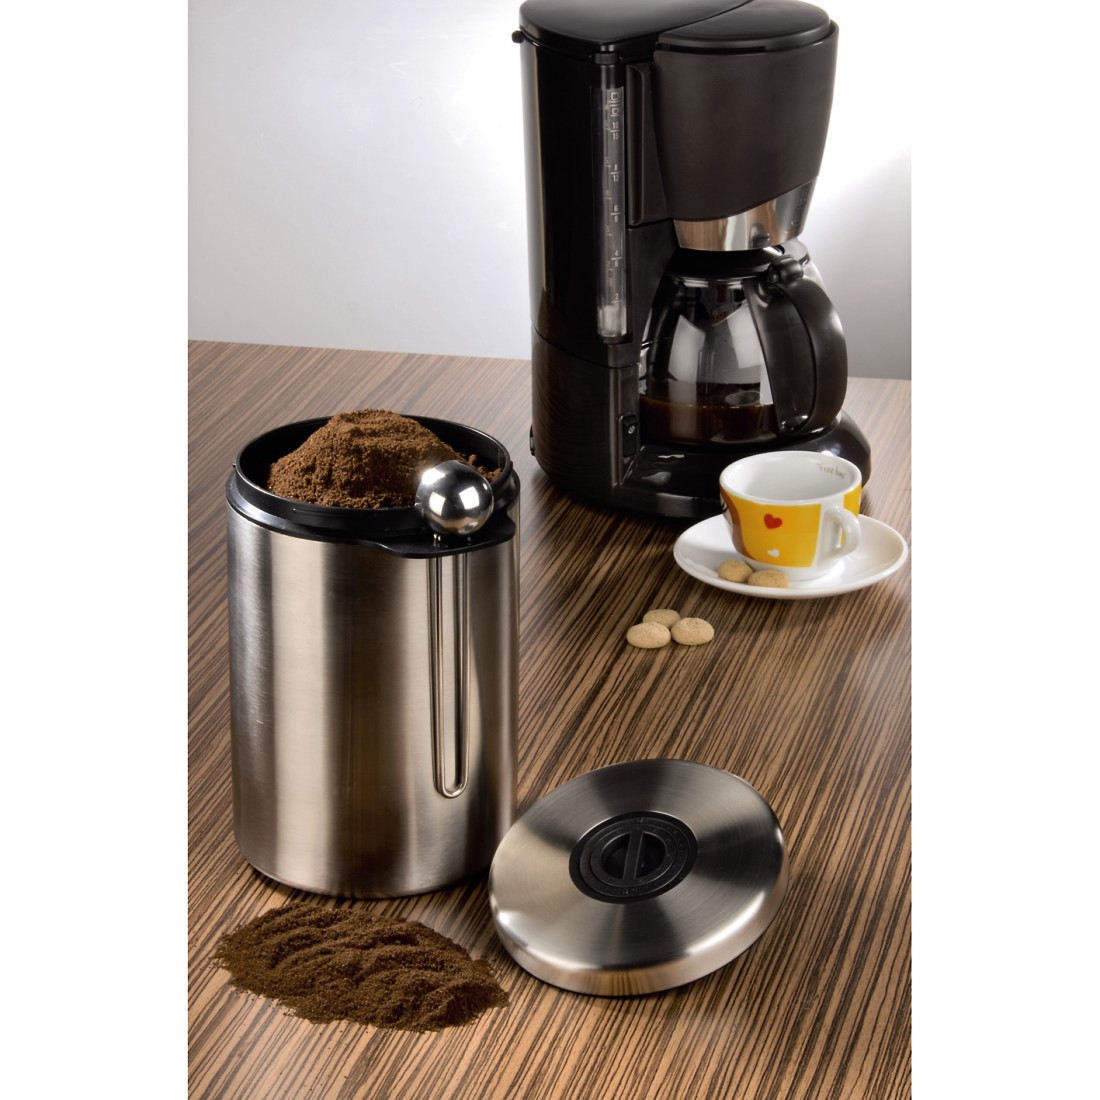 awx2 High-Res Appliance 2 - Xavax, Stainless Steel Container for 1 kg of Coffee Beans